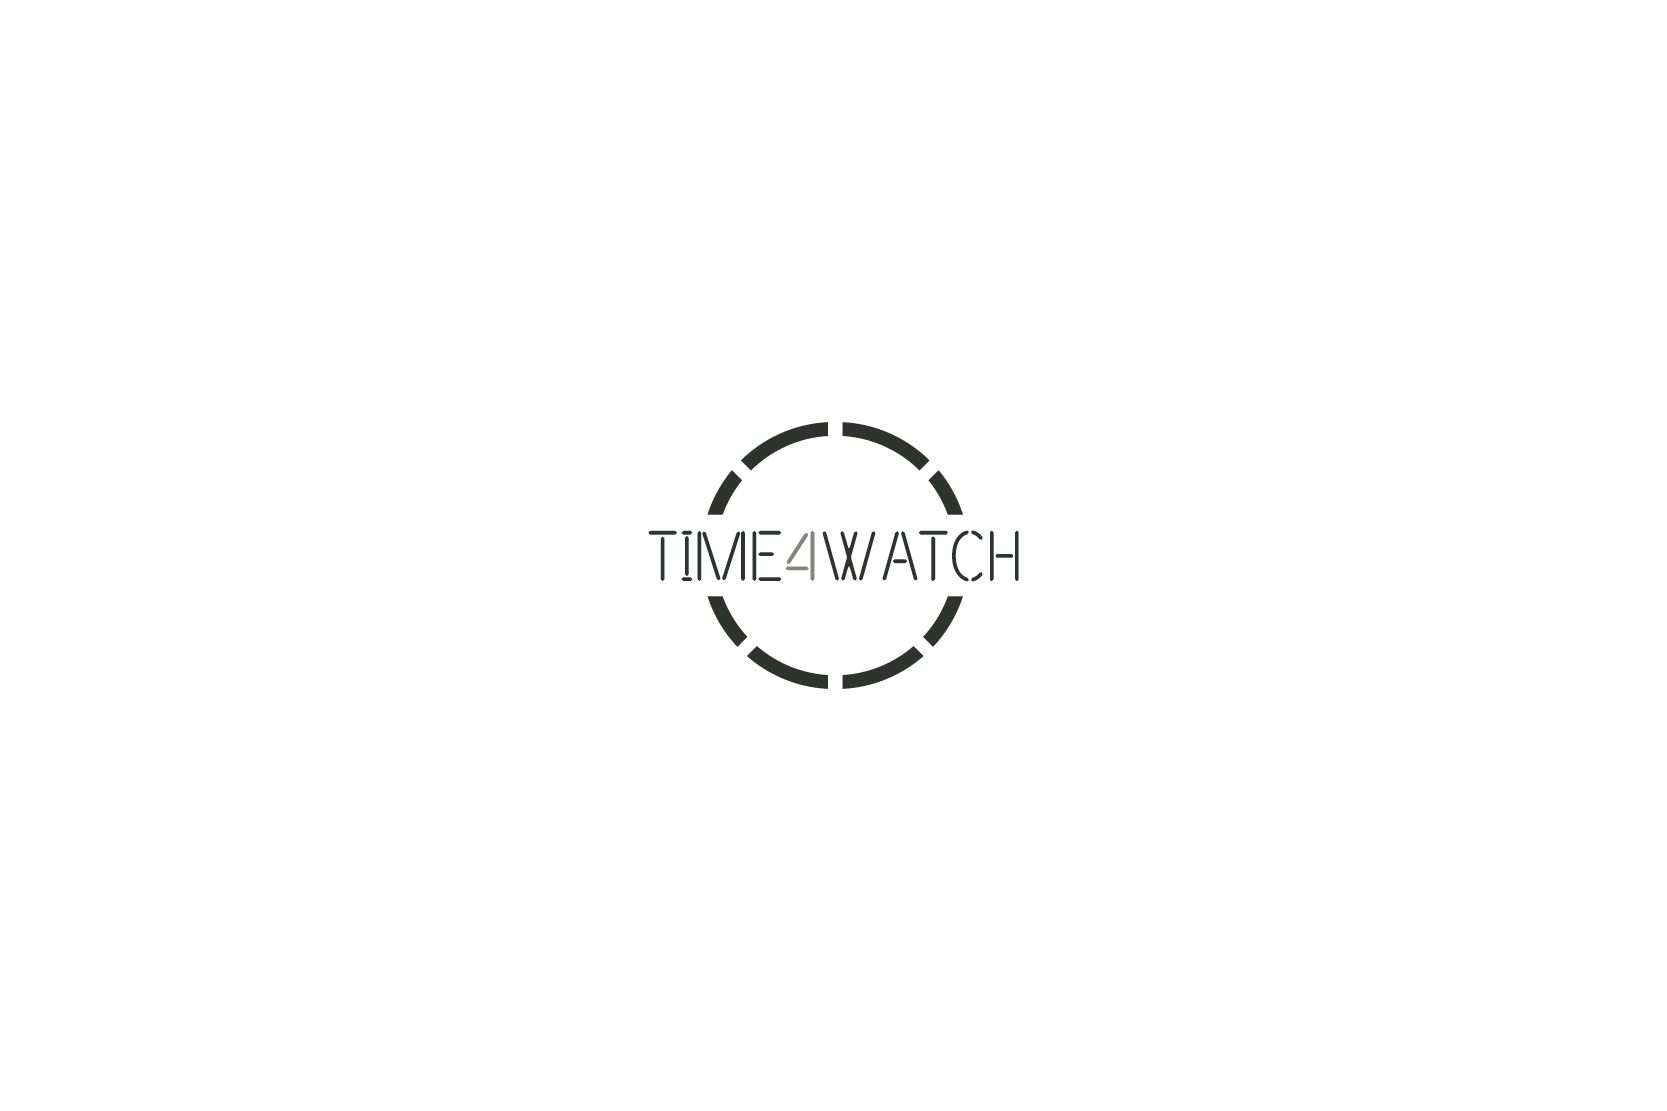 Time4watch logo